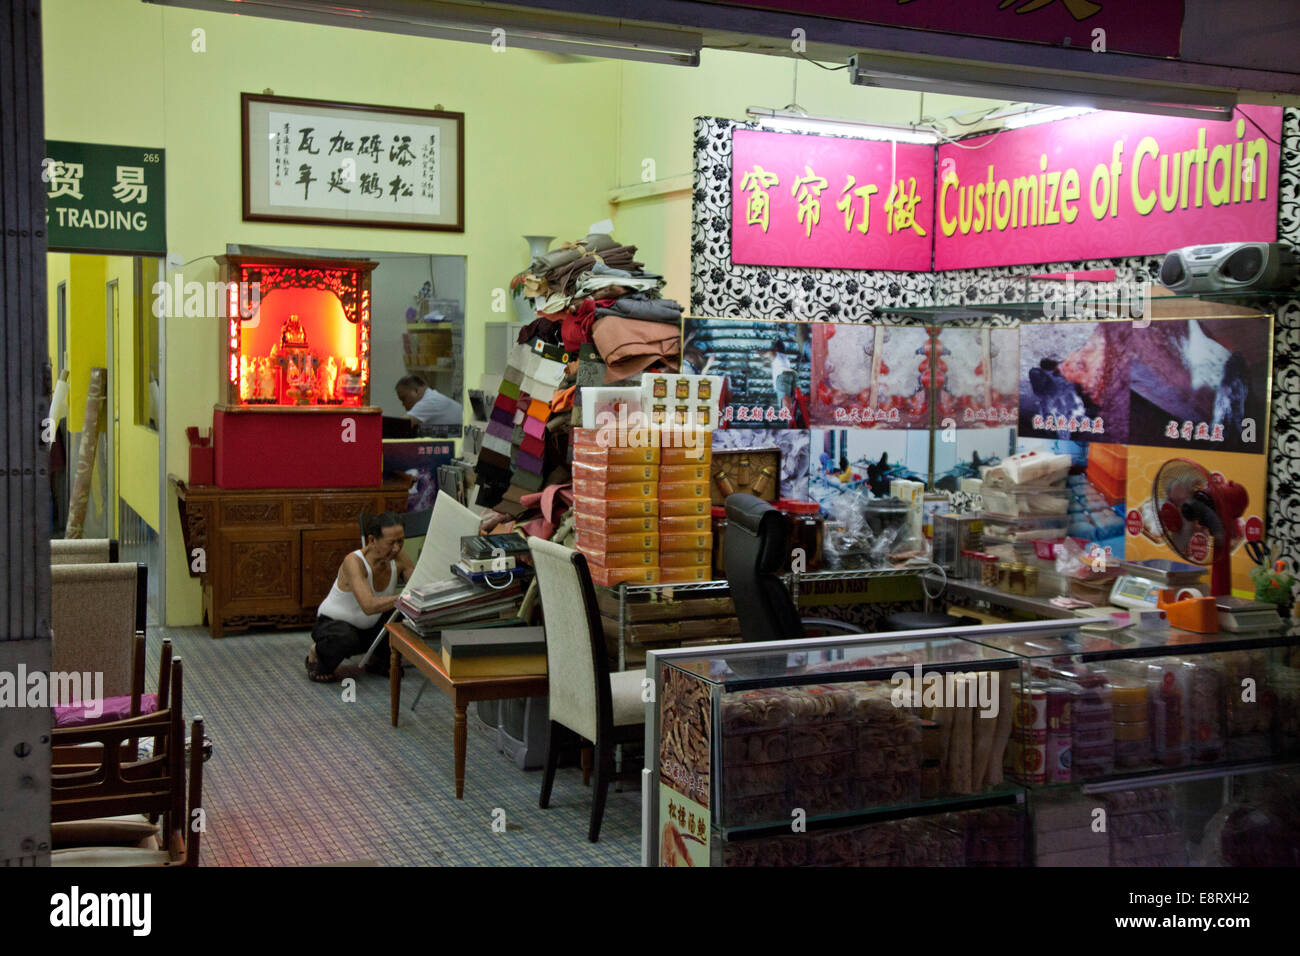 Delicieux Furniture And Upholstery Shop In Chinatown, Singapore   Stock Image